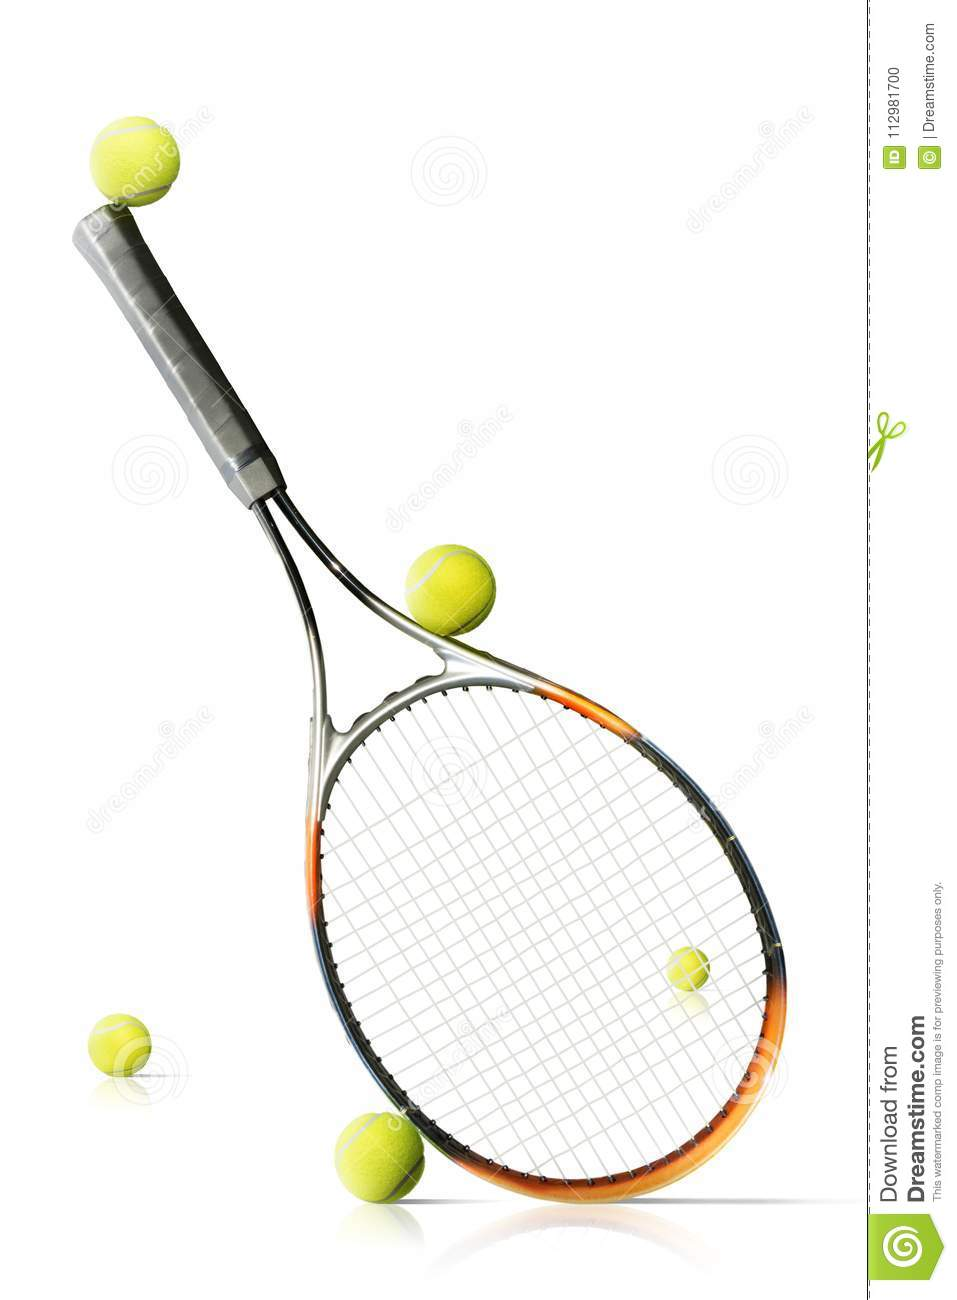 Tennis balls and racket isolated the white background